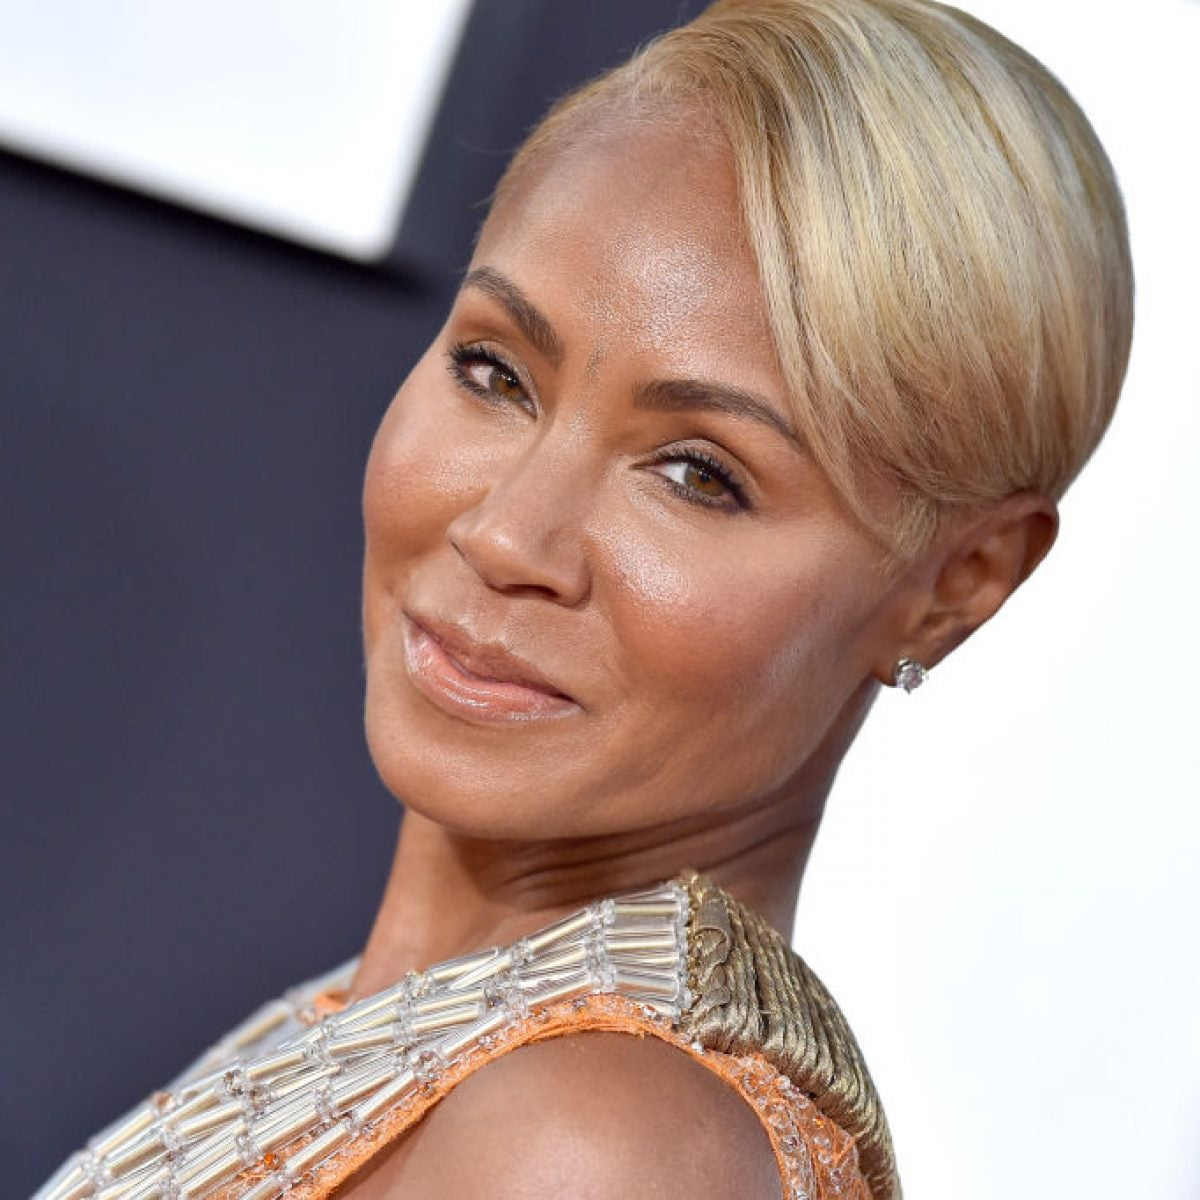 Jada Pinkett Smith Confirms Past Relationship With August Alsina Happened While Separated From Will Smith